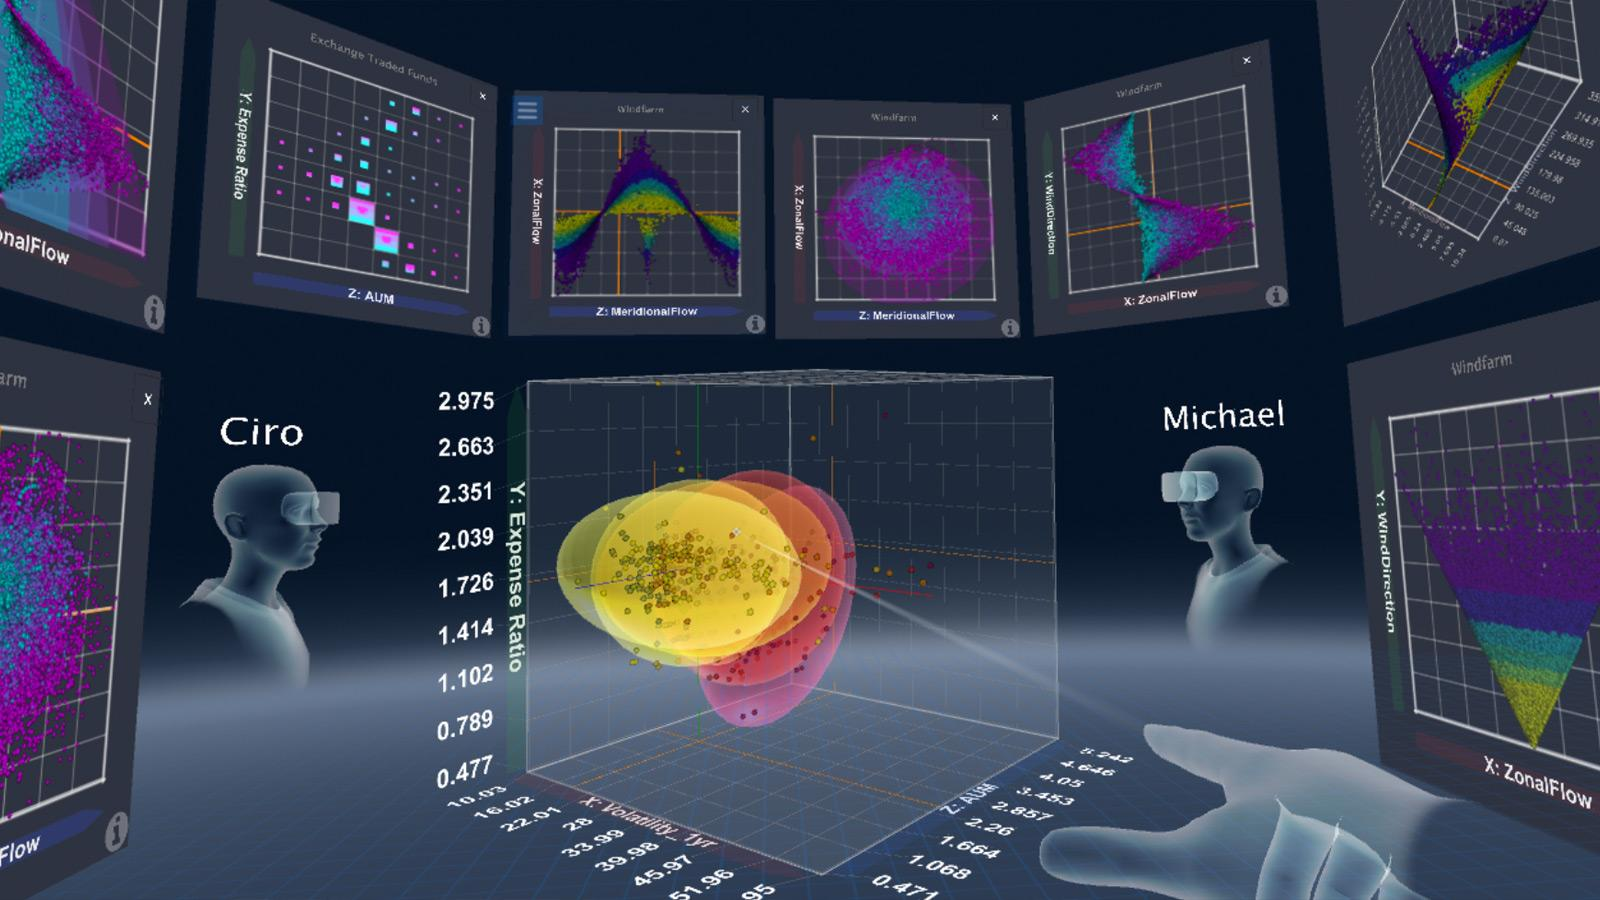 Virtualitics holographic projections of data analytics